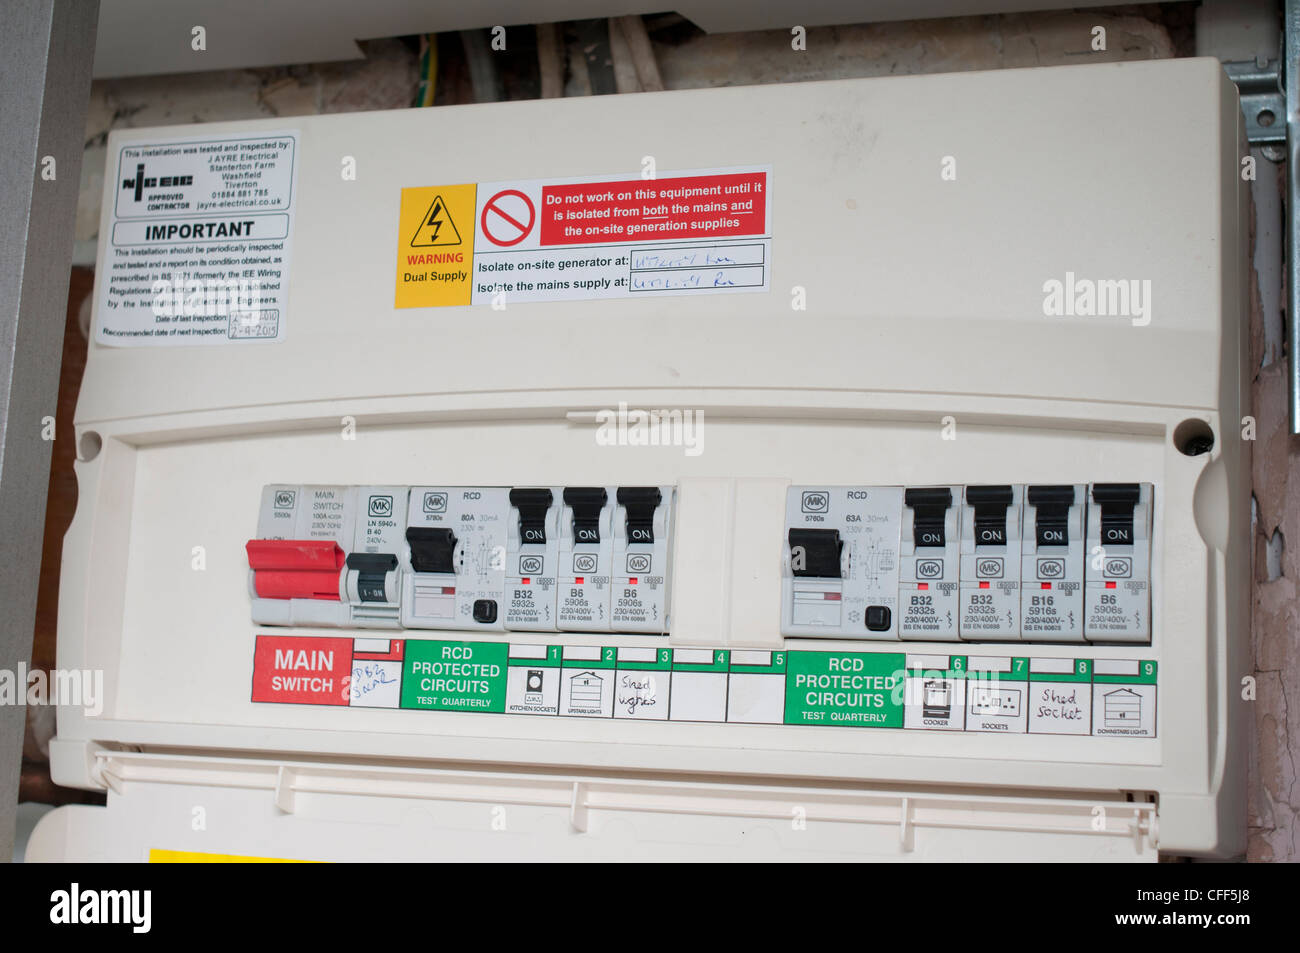 domestic fuse box CFF5J8 domestic fuse box stock photo, royalty free image 43974288 alamy fuse box fuses at readyjetset.co